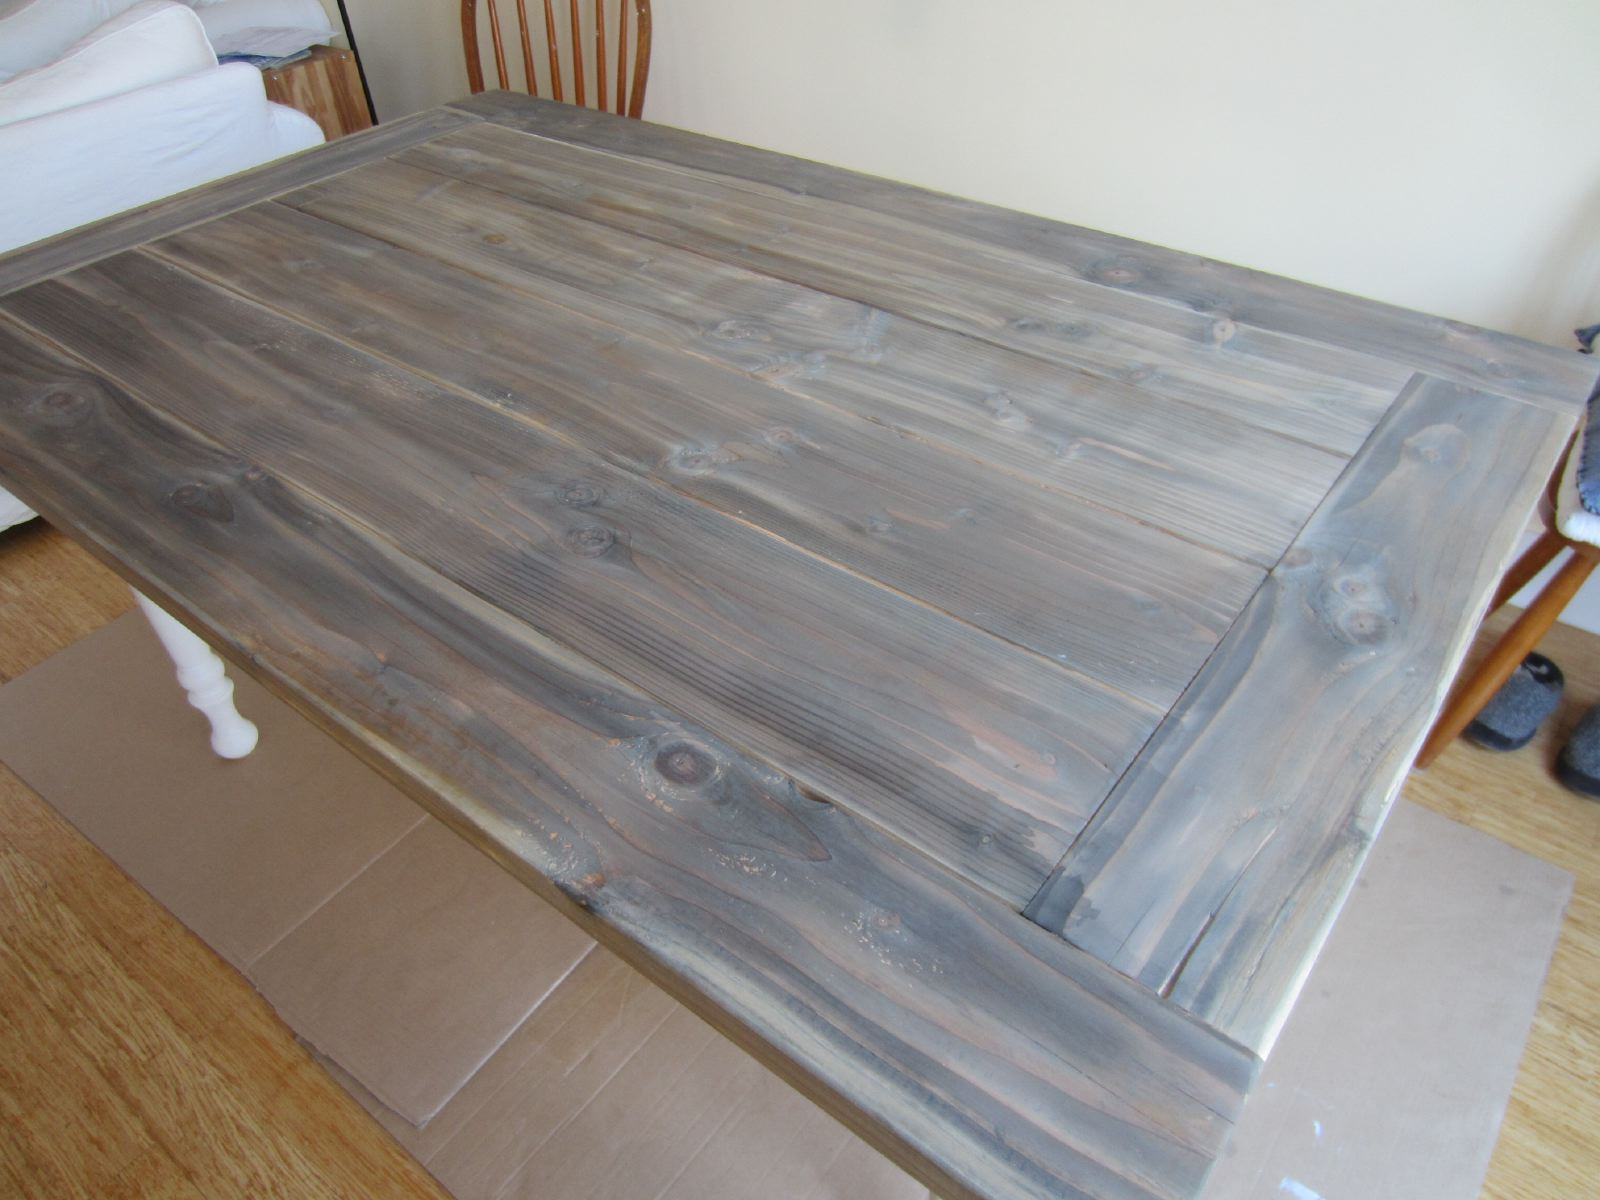 Diy building a farmhouse table and bench shirley for Building a farmhouse